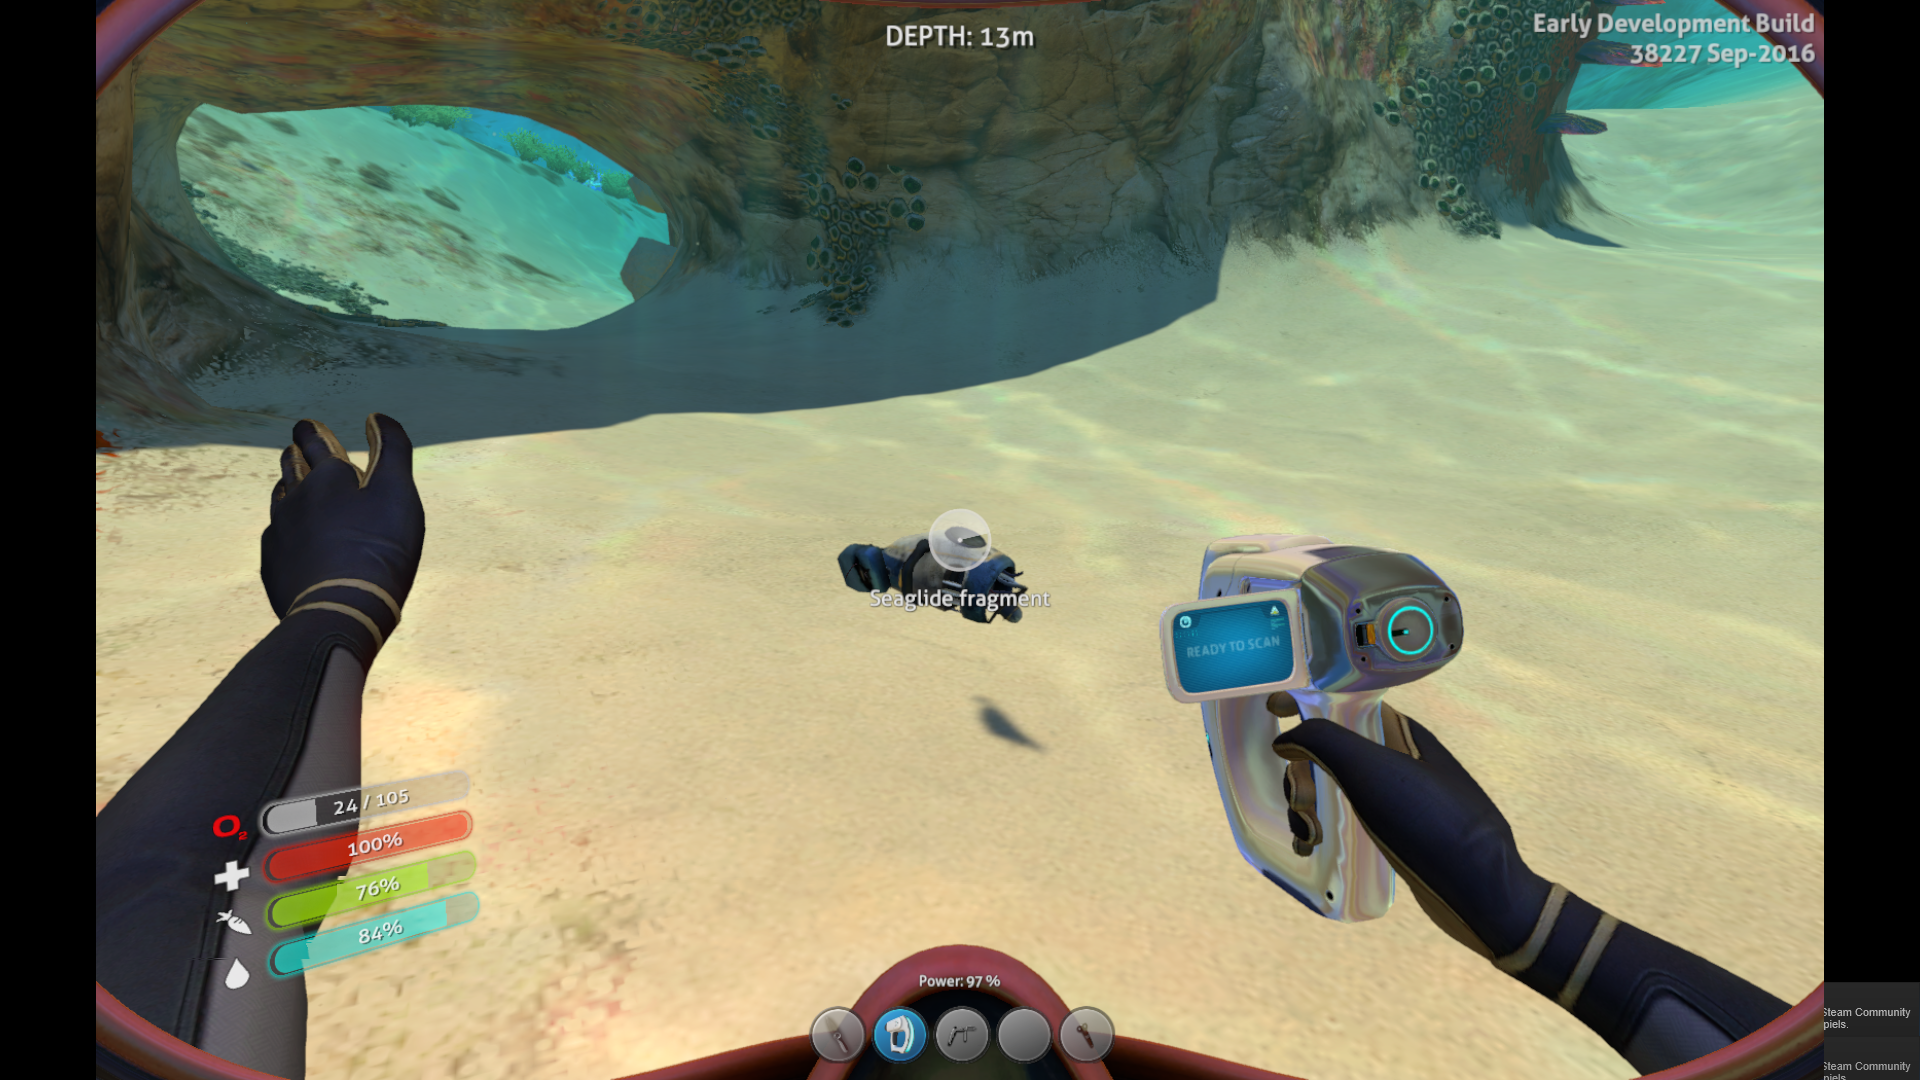 Subnautica Guide English Jarvisguides We've covered our three vehicles in the game already, and the scanner room. subnautica guide english jarvisguides